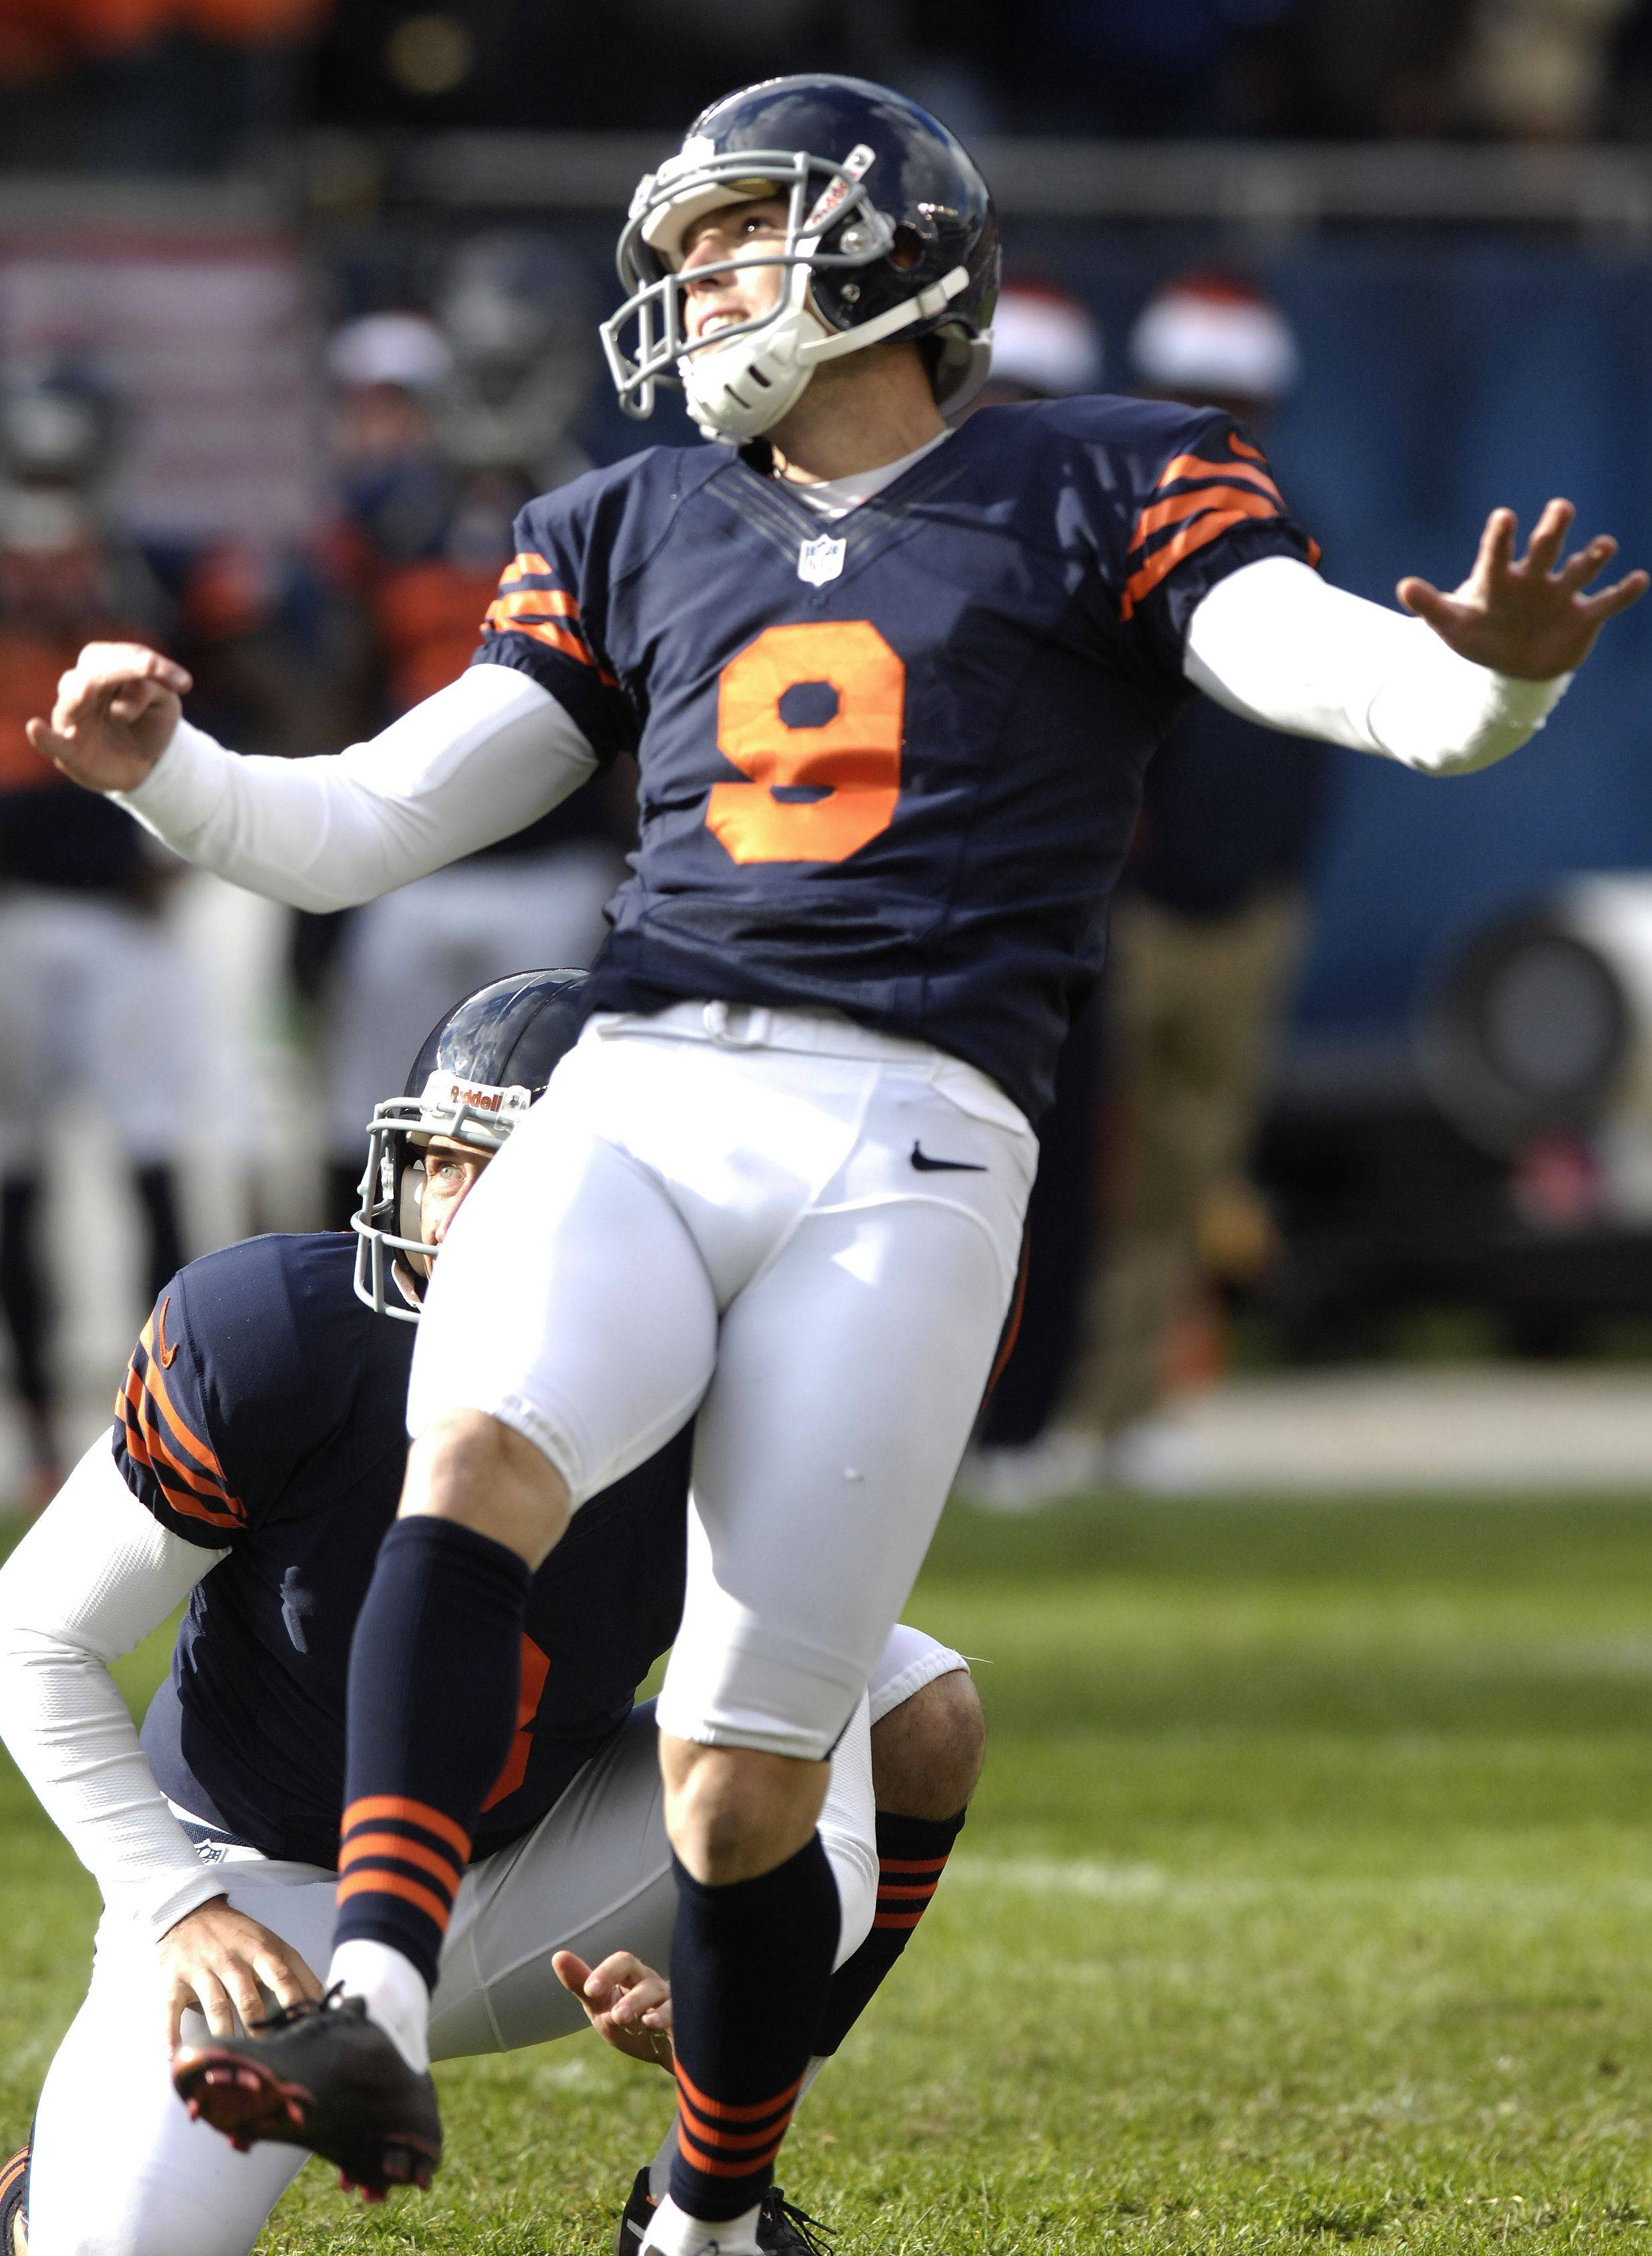 Robbie Gould kicks the game-winning, 41-yard FG as time expires Sunday at Soldier Field.